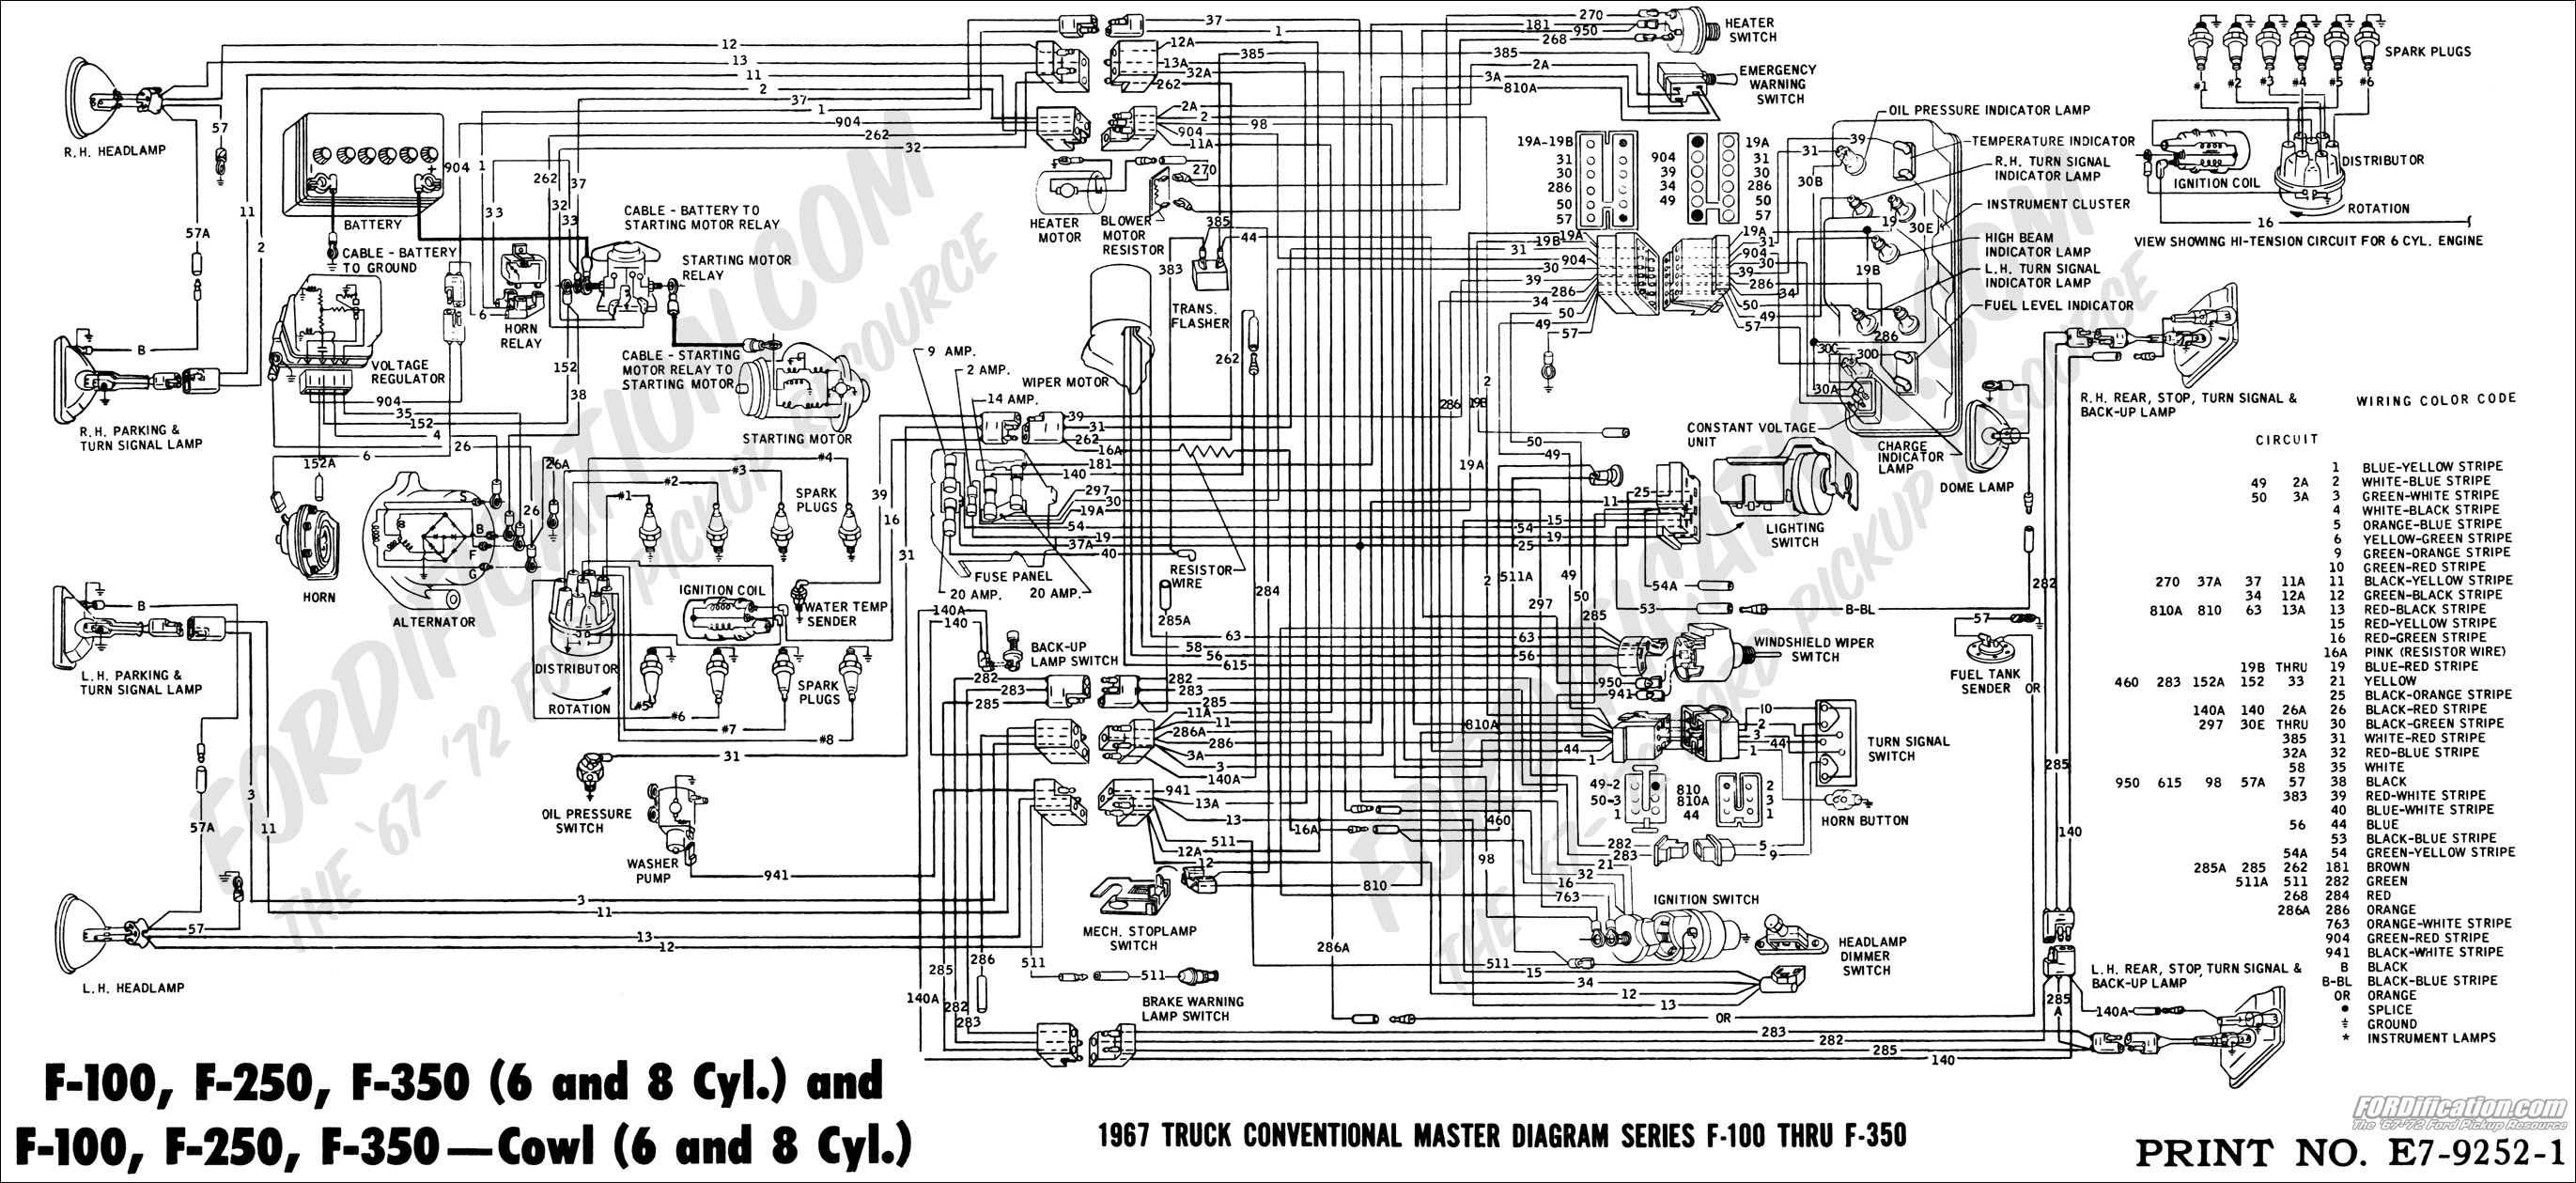 2001 Ford Focus Se Engine Diagram Wiring Schematic Another Blog About F250 Experts Of U2022 Rh Evilcloud Co Uk